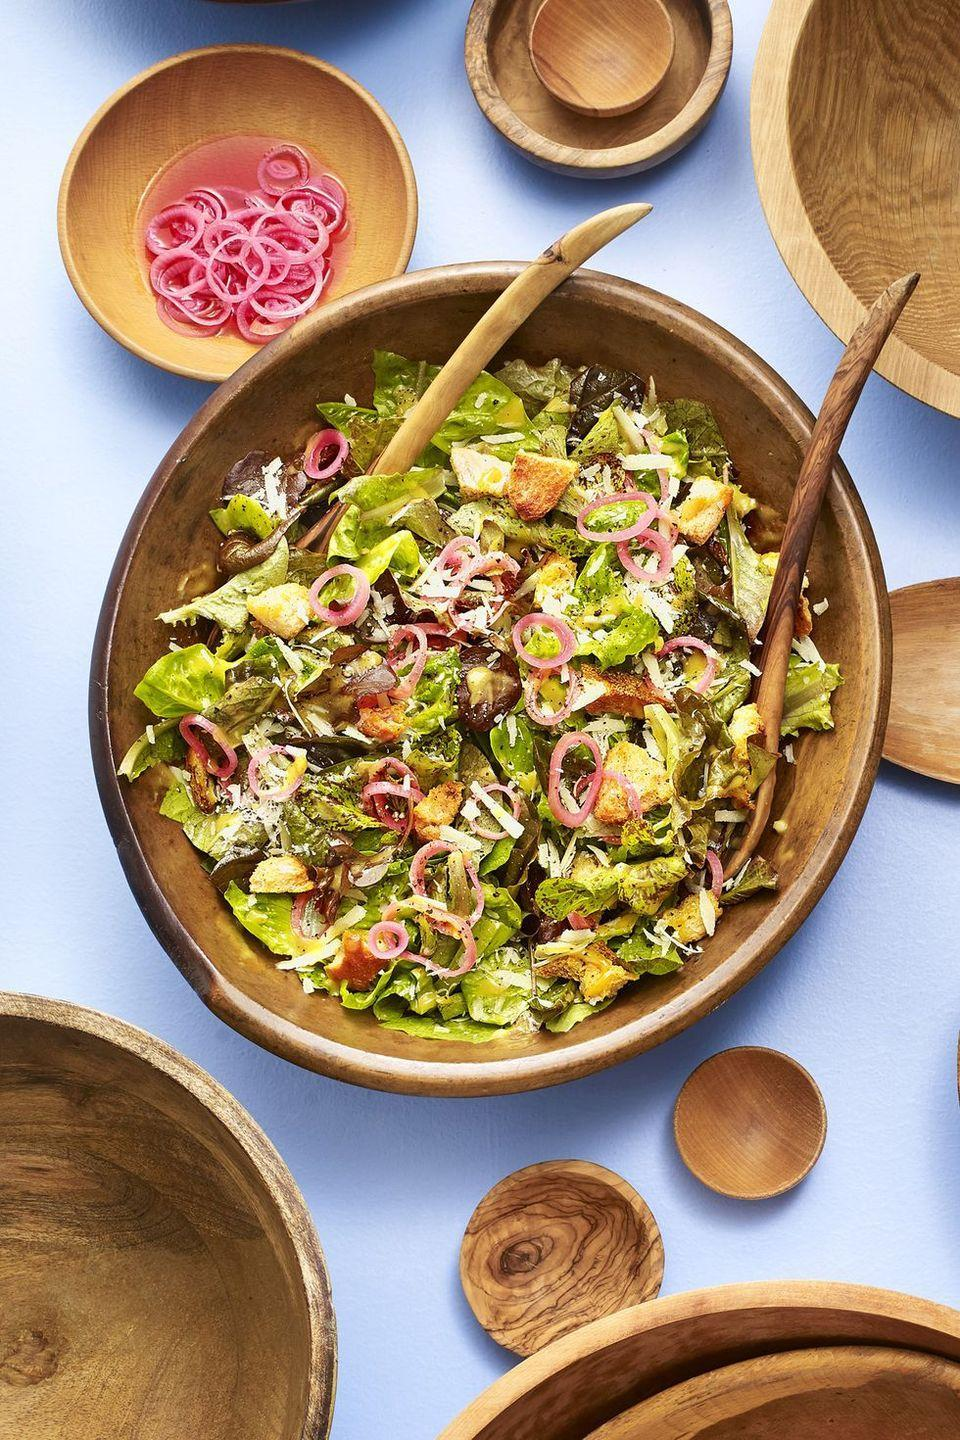 "<p>Homemade croutons will have everyone reaching for second—and third—helpings.</p><p><strong><a href=""https://www.countryliving.com/food-drinks/a19705324/spring-greens-caesar-salad-with-pickled-shallot-recipe/"" rel=""nofollow noopener"" target=""_blank"" data-ylk=""slk:Get the recipe"" class=""link rapid-noclick-resp"">Get the recipe</a>.</strong></p>"